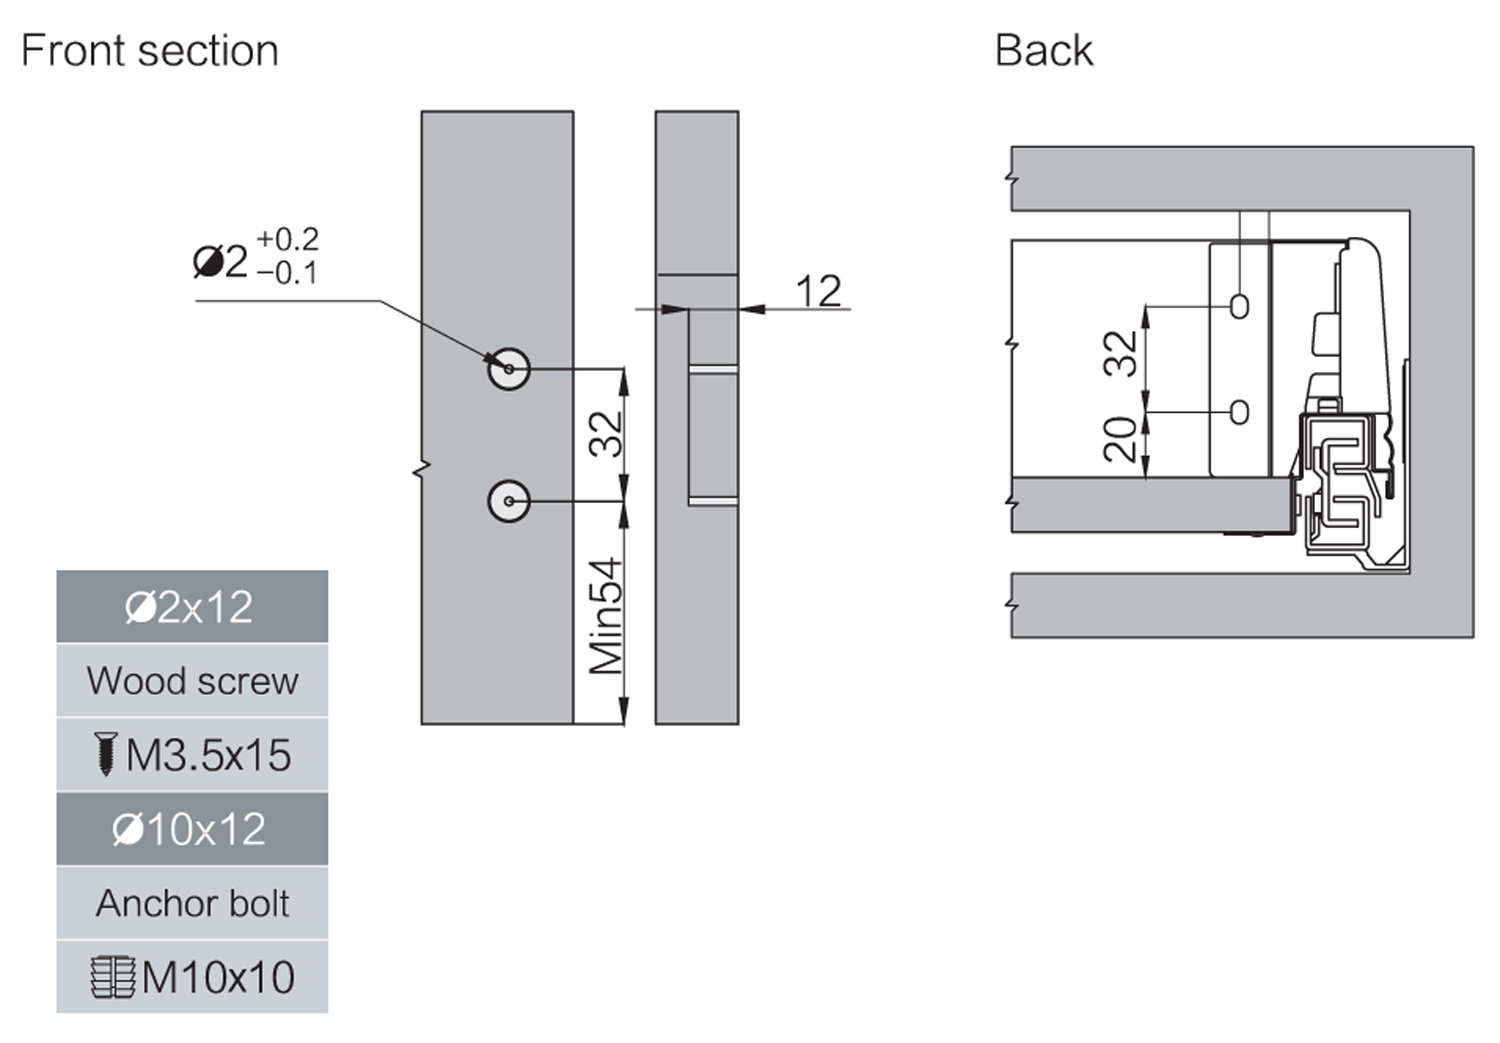 P71_Drawer_Installation_Dimensions_Drawing